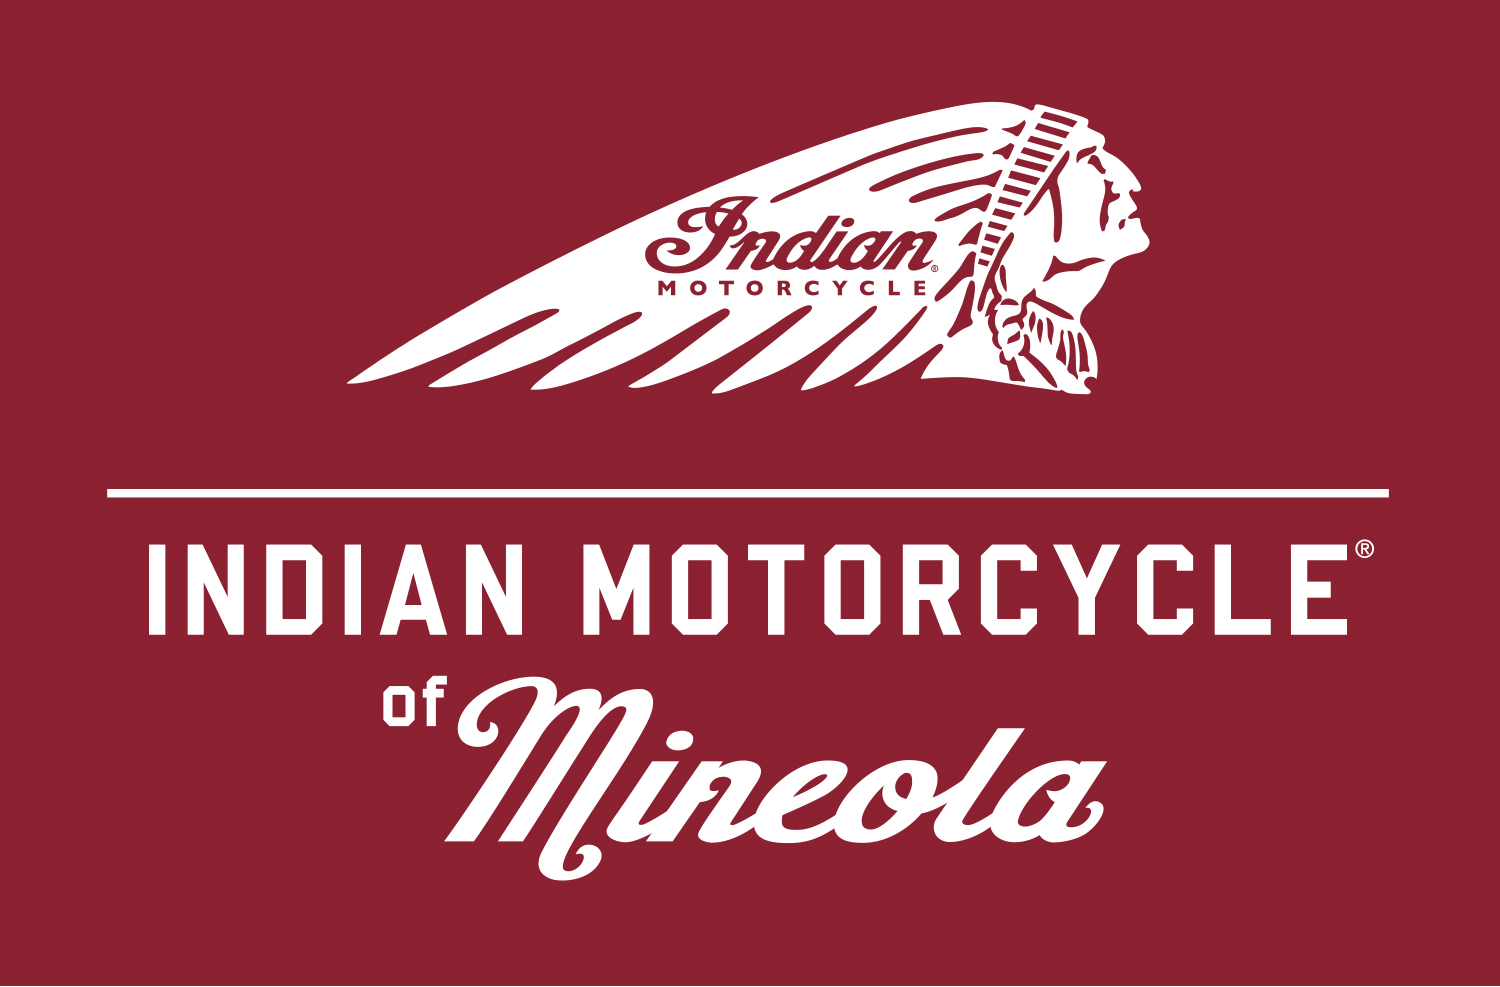 Indian Motorcycle of Mineola is located in Mineola, NY | New and Used Inventory for Sale | Indian Motorcycles and more!